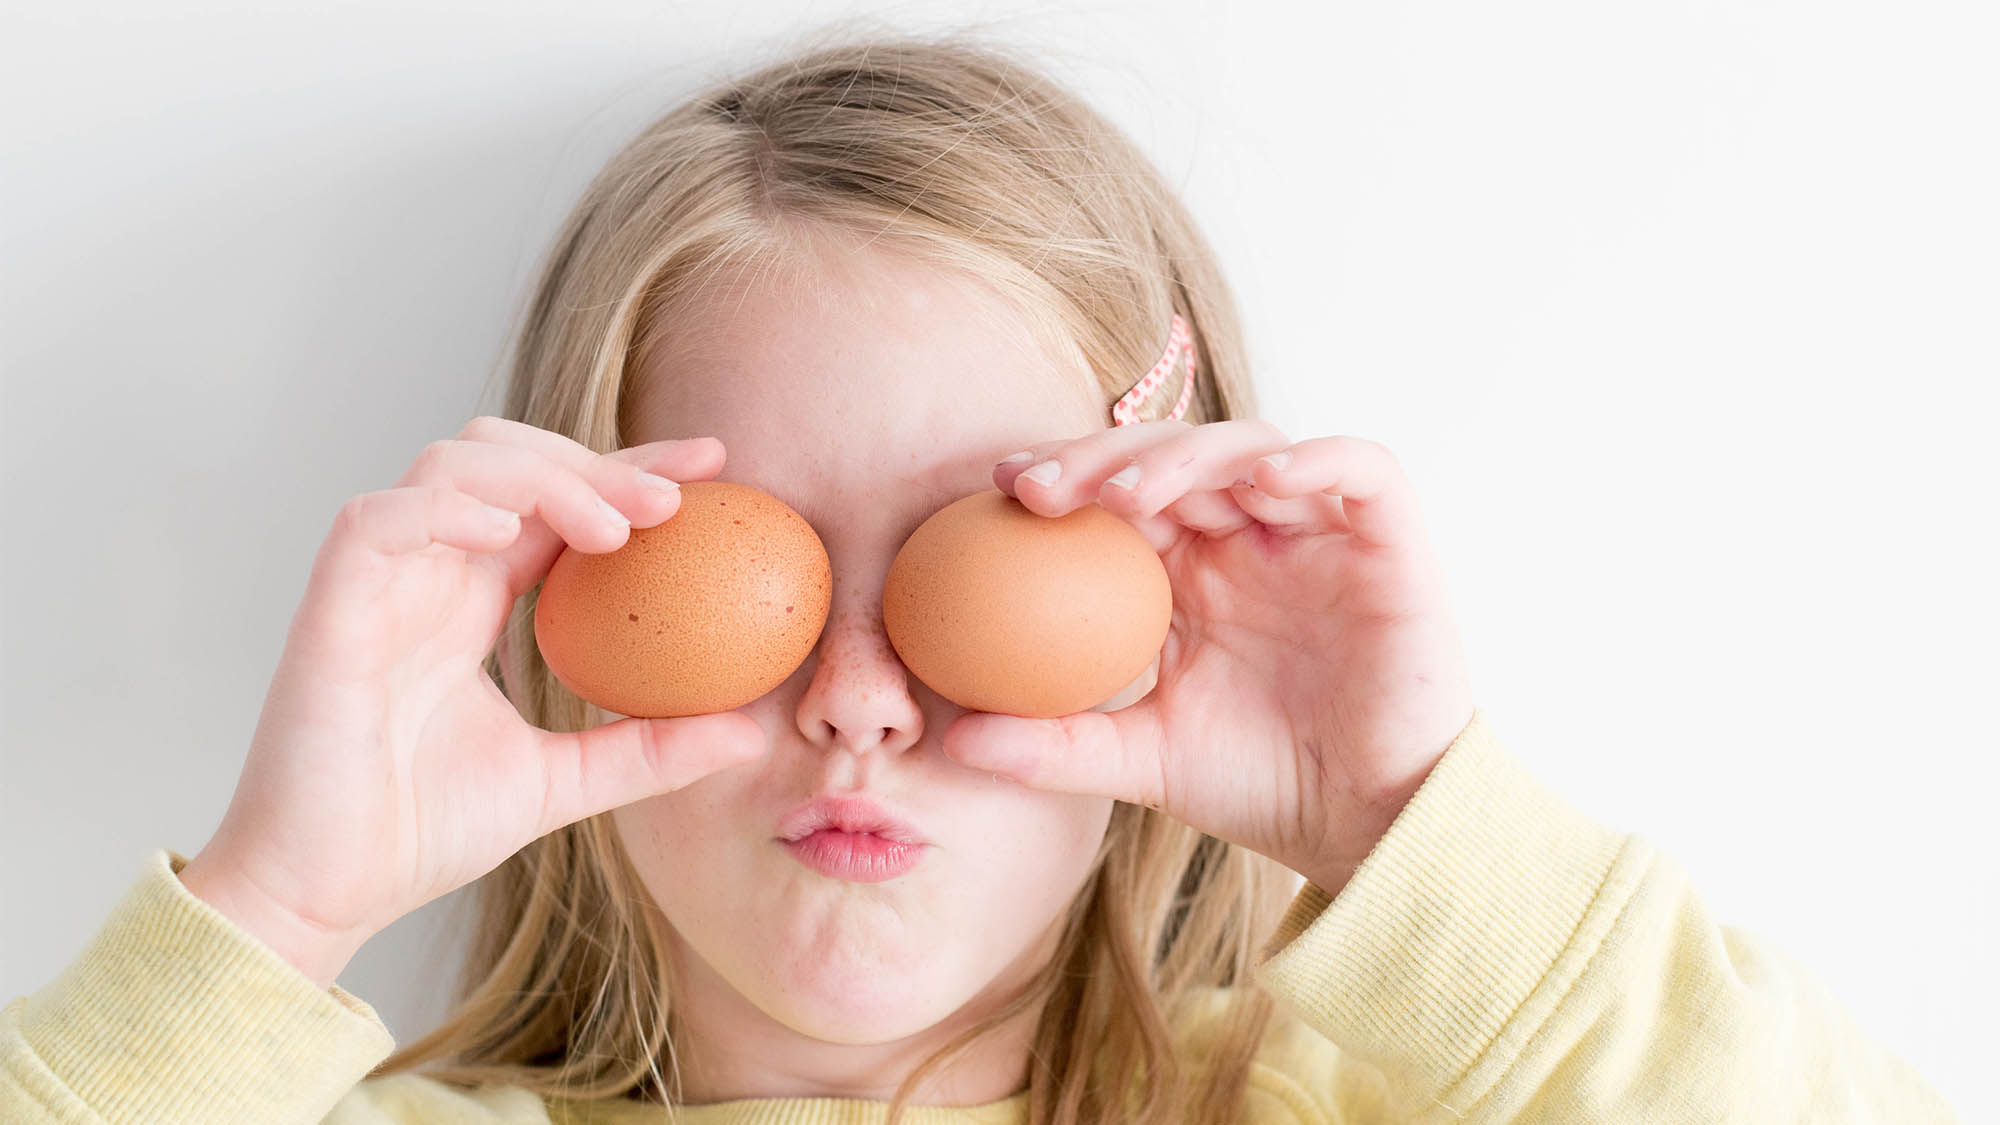 Little Girl Holding Two Eggs Over Her Eyes